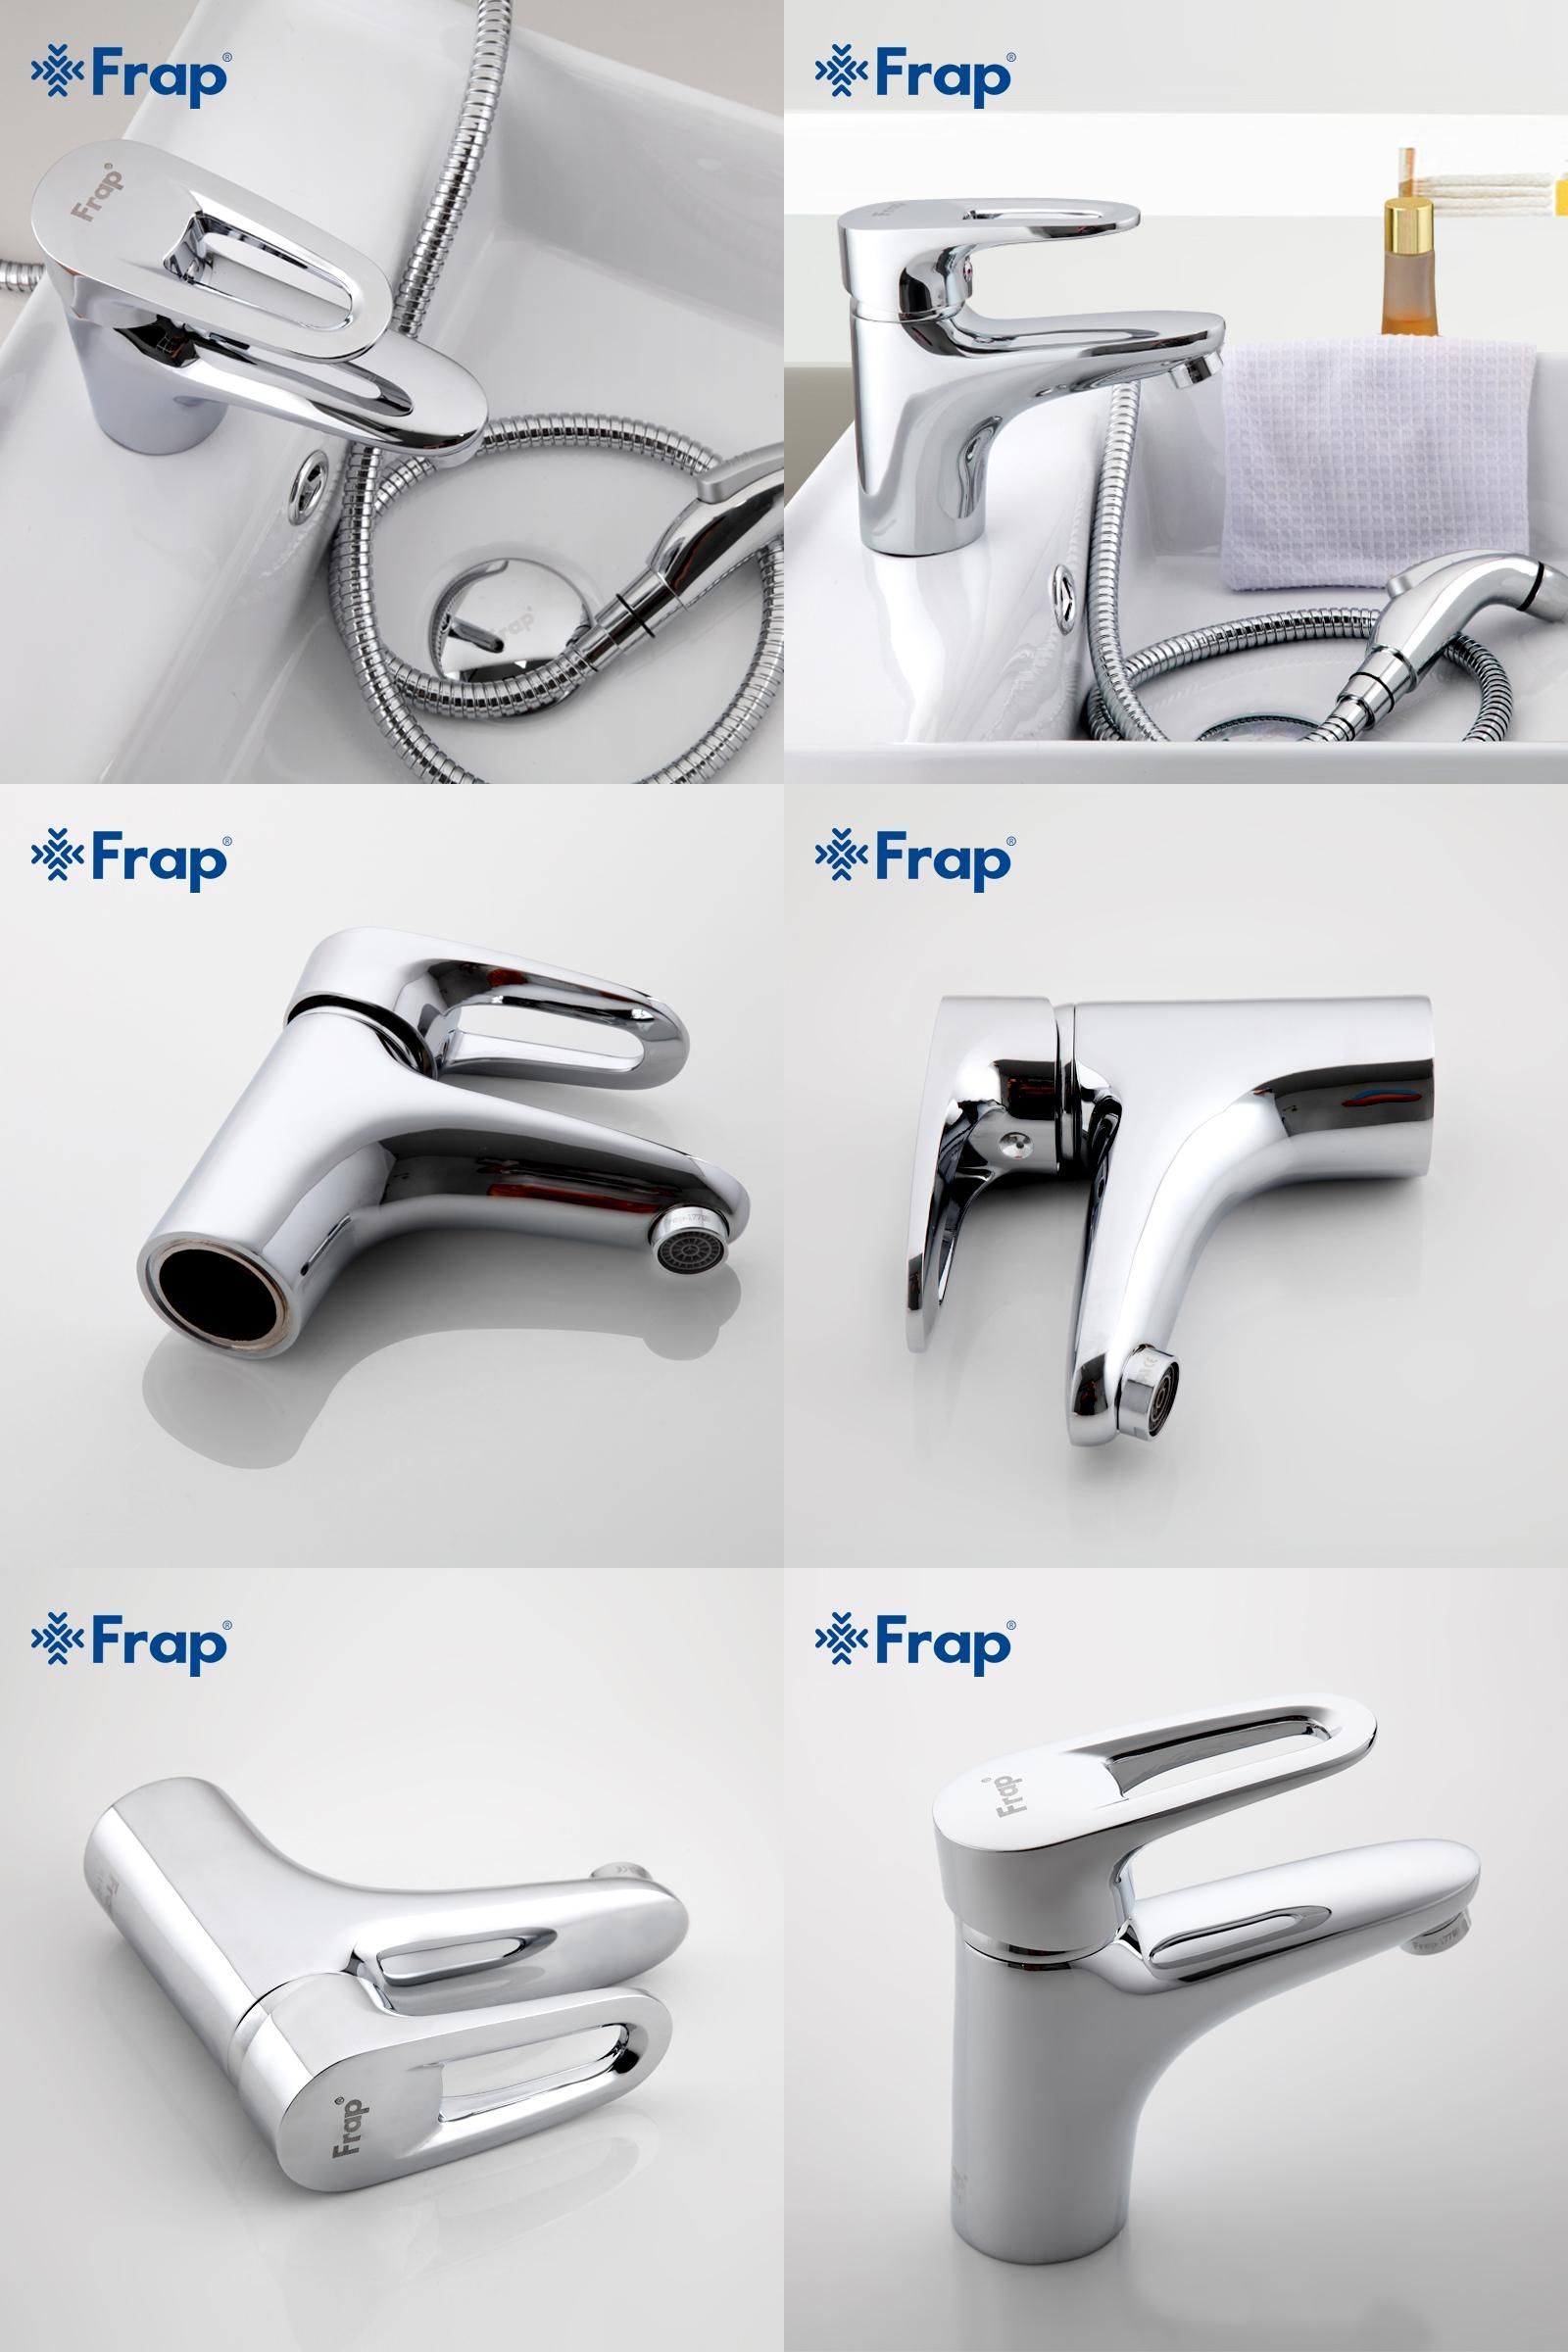 Visit to Buy] Frap Brass Body Material Bathroom Toilet taps With ...